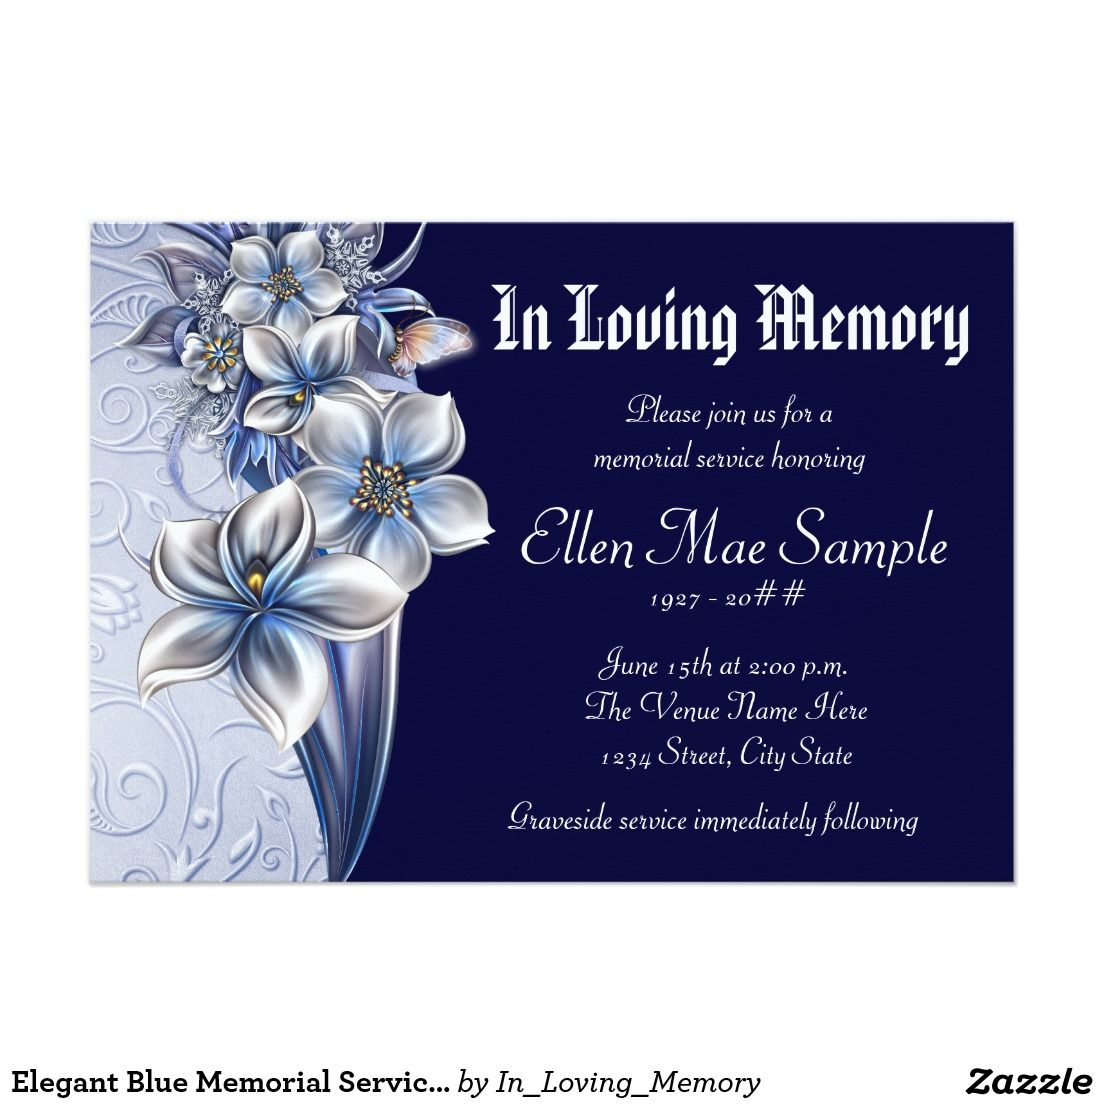 Elegant blue memorial service announcements elegant elegant blue memorial service announcements funeral invitationinvitation cardsinvitationsmemorial ideasannouncementresume examplesresume stopboris